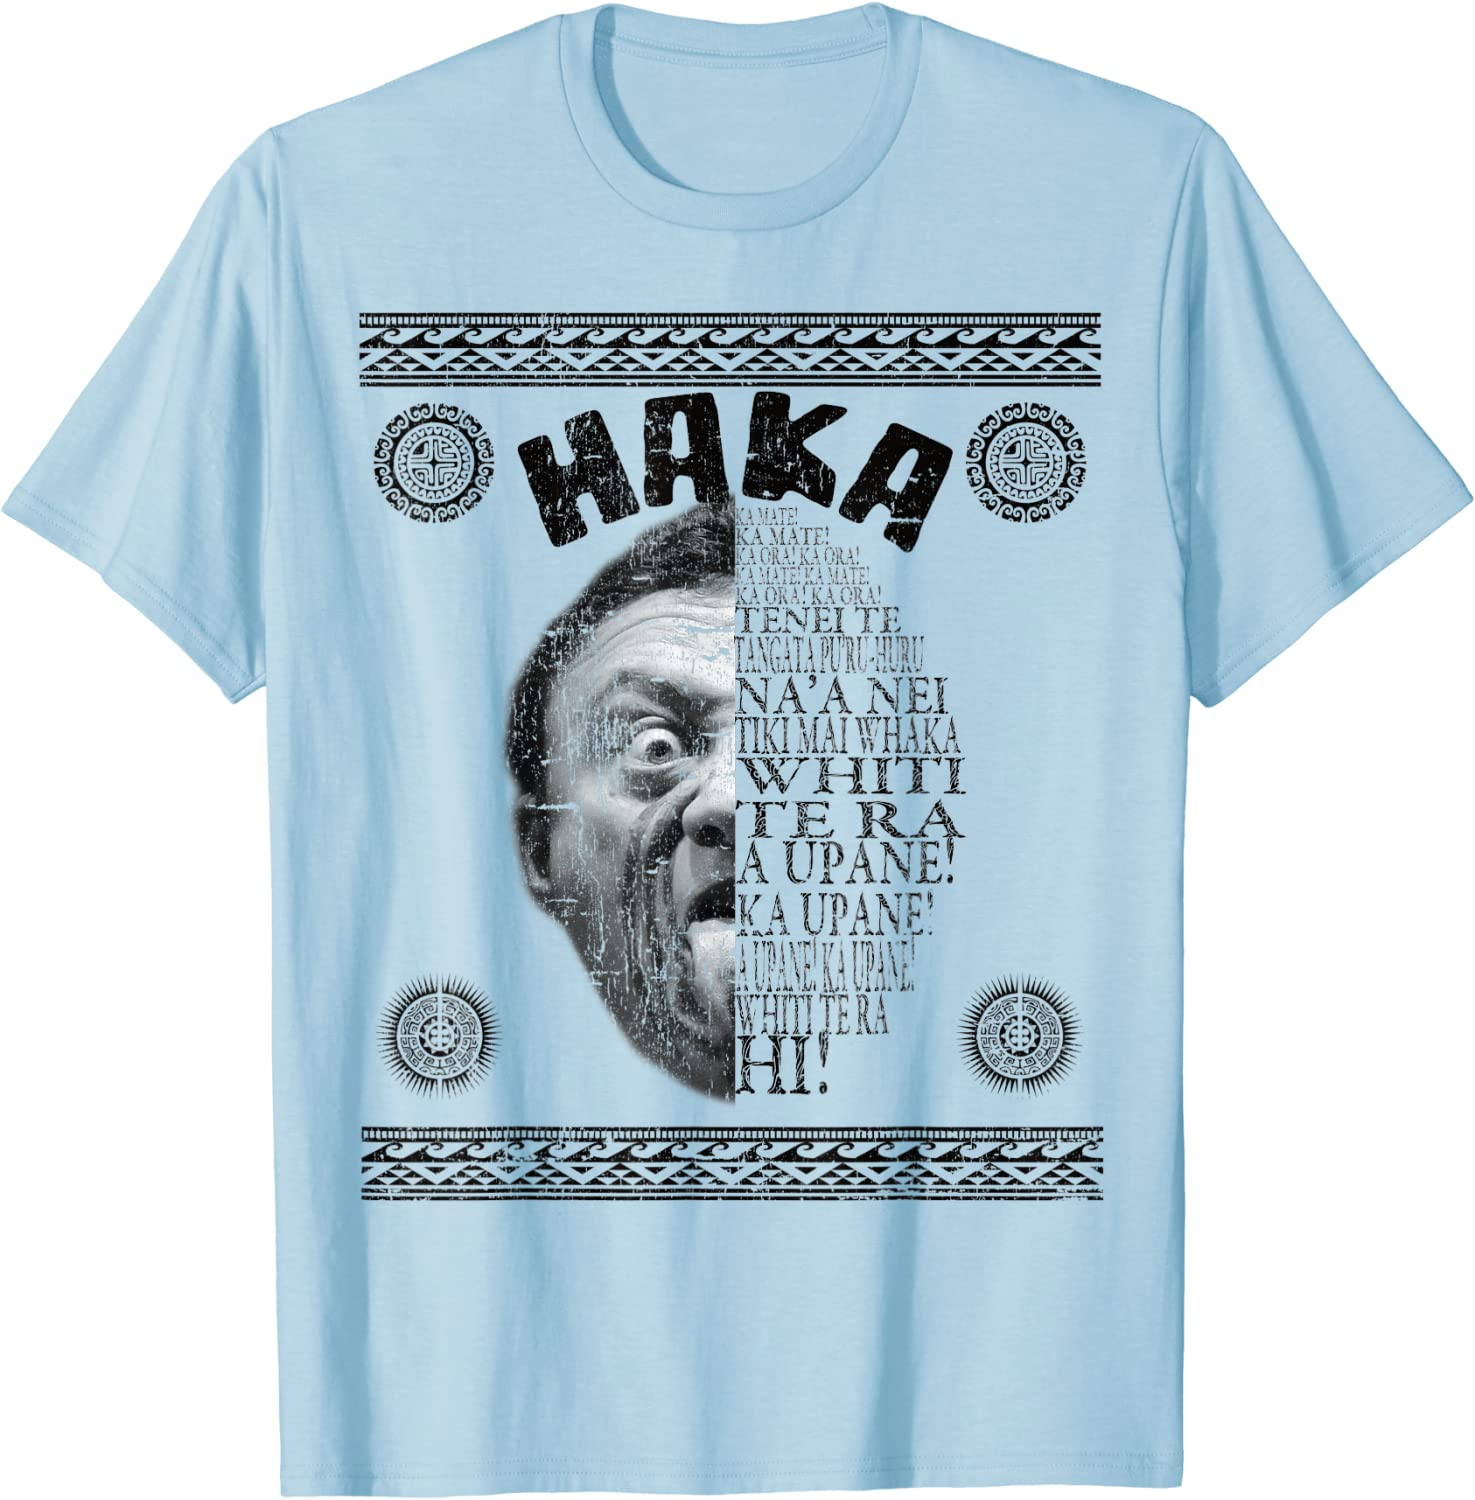 qhwd Haka Rugby Maori Warrior Inspired T-Shirt pour Homme